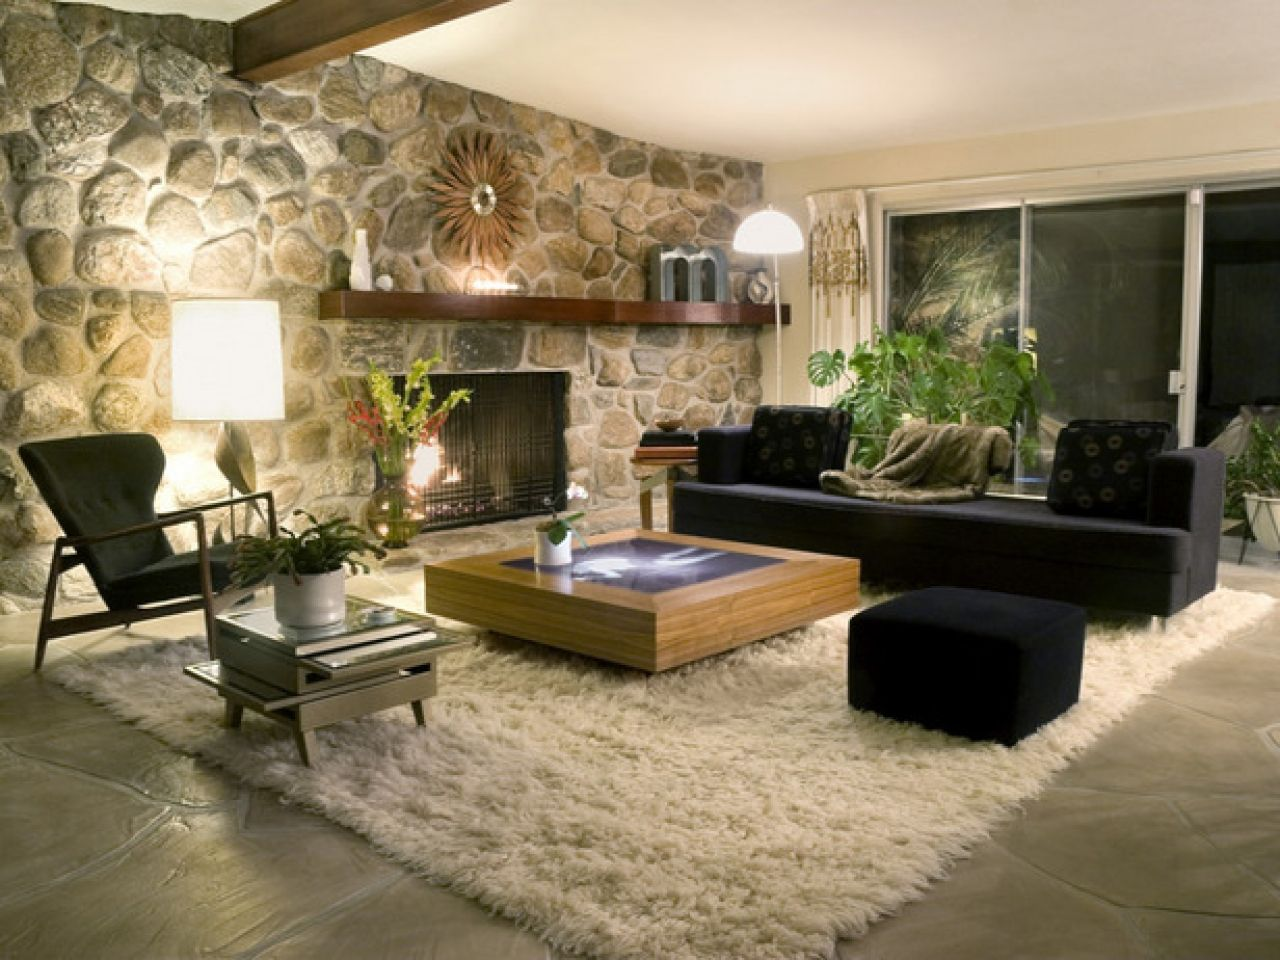 Delightful Decoration Luxury Living Room Furniture Ideas With Stone Wall And Fireplace Part 22